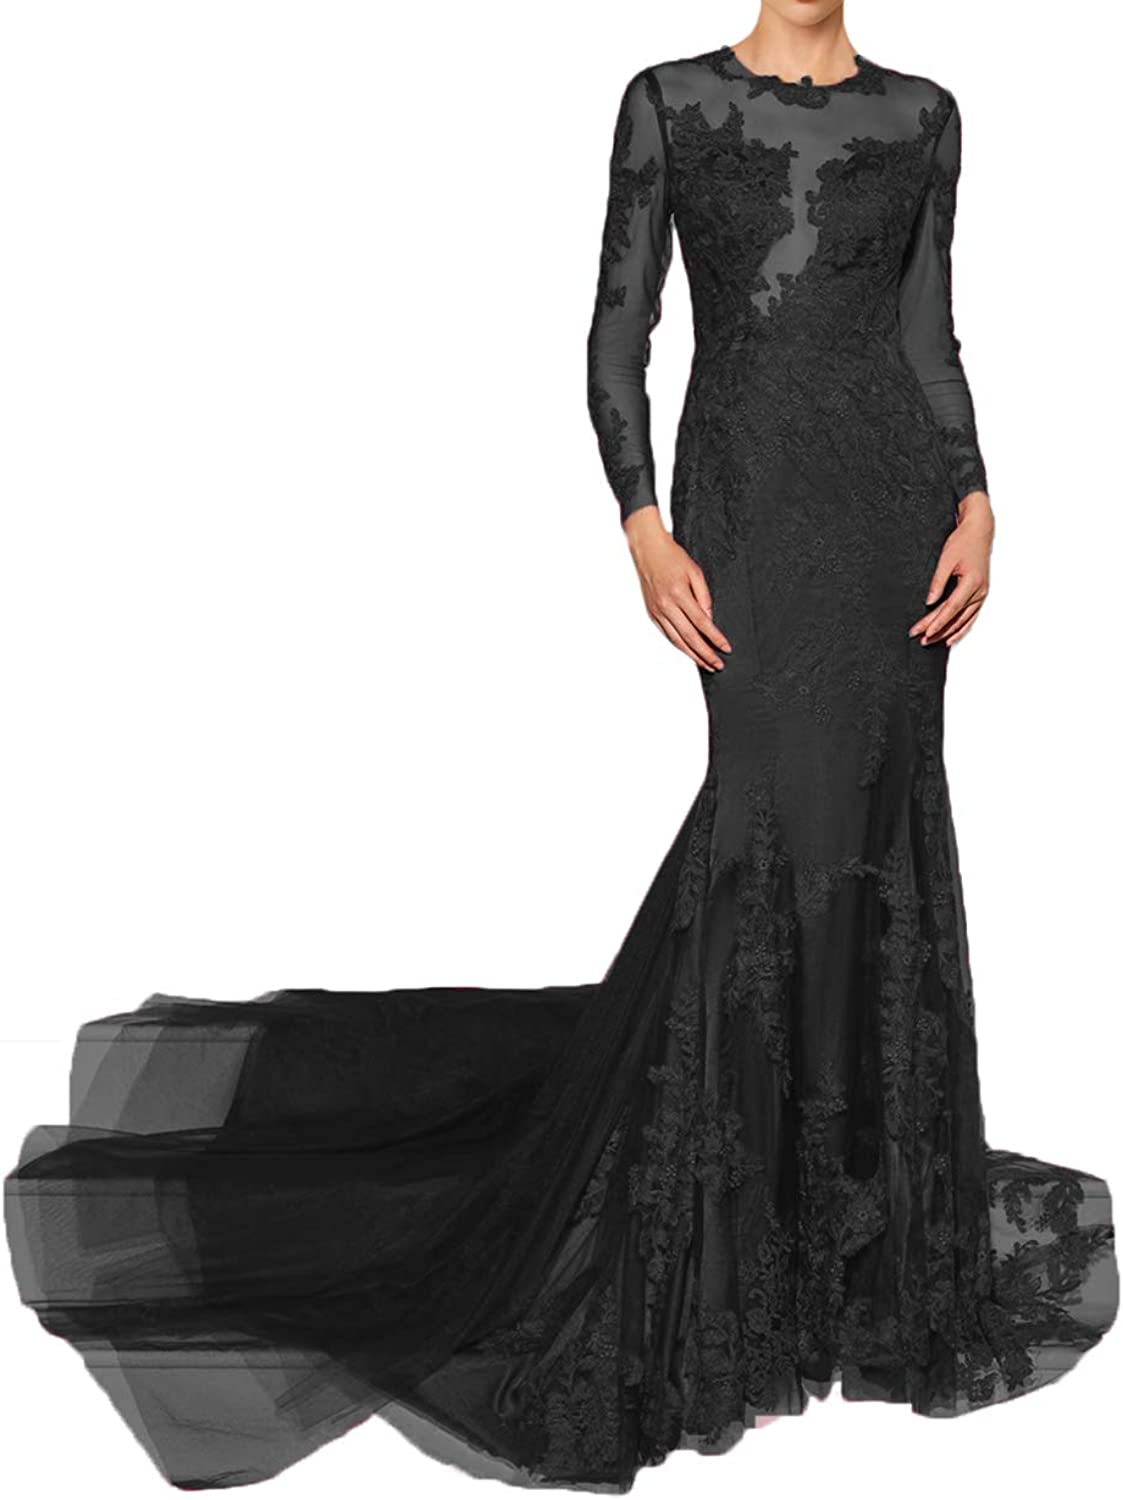 Alilith.Z Sexy Illusion Appliques Prom Dresses 2019 Mermaid Long Party Gowns Formal Evening Dresses for Women with Sleeves